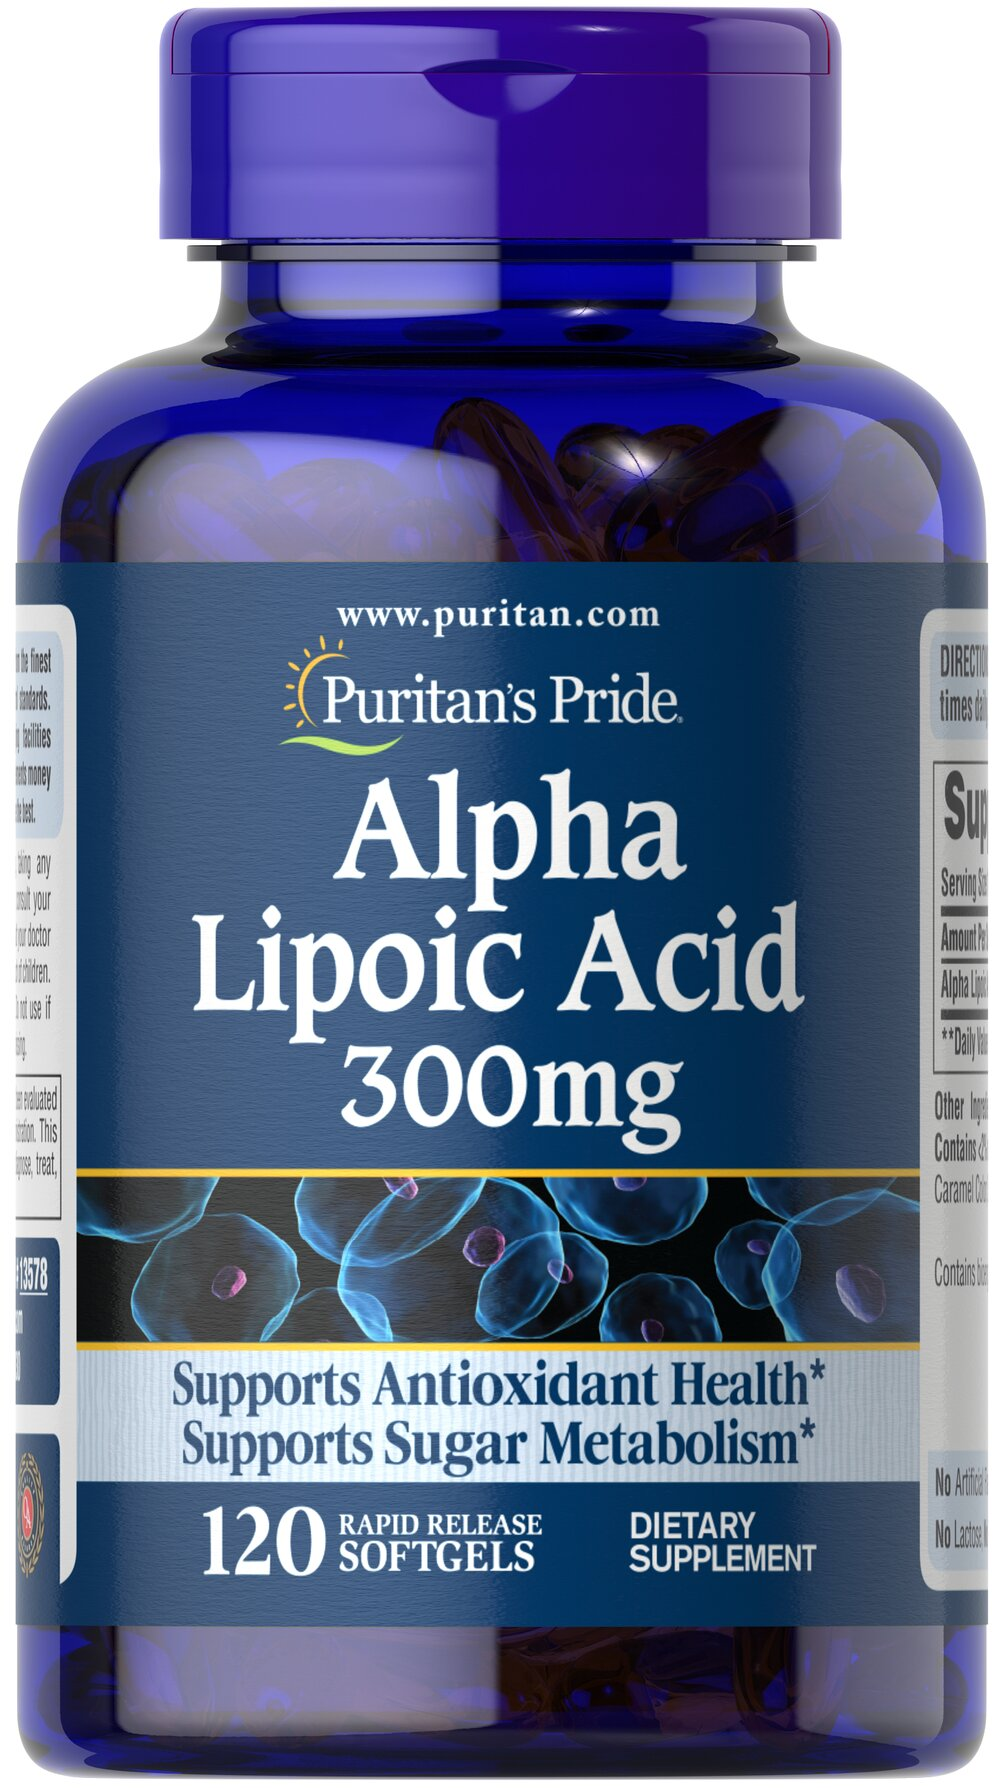 "Alpha Lipoic Acid 300 mg <p>Alpha Lipoic Acid (ALA) helps metabolize sugar, especially in muscles, where it promotes energy.**</p><p>ALA is also beneficial for liver health, and helps to revitalize the underlying structure of the skin so it can look healthier and more radiant.**</p><p> ALA is often called the ""universal antioxidant"" for its ability to help neutralize cell-damaging free radicals.** </p> 120 Softgels 300 mg $23.99"